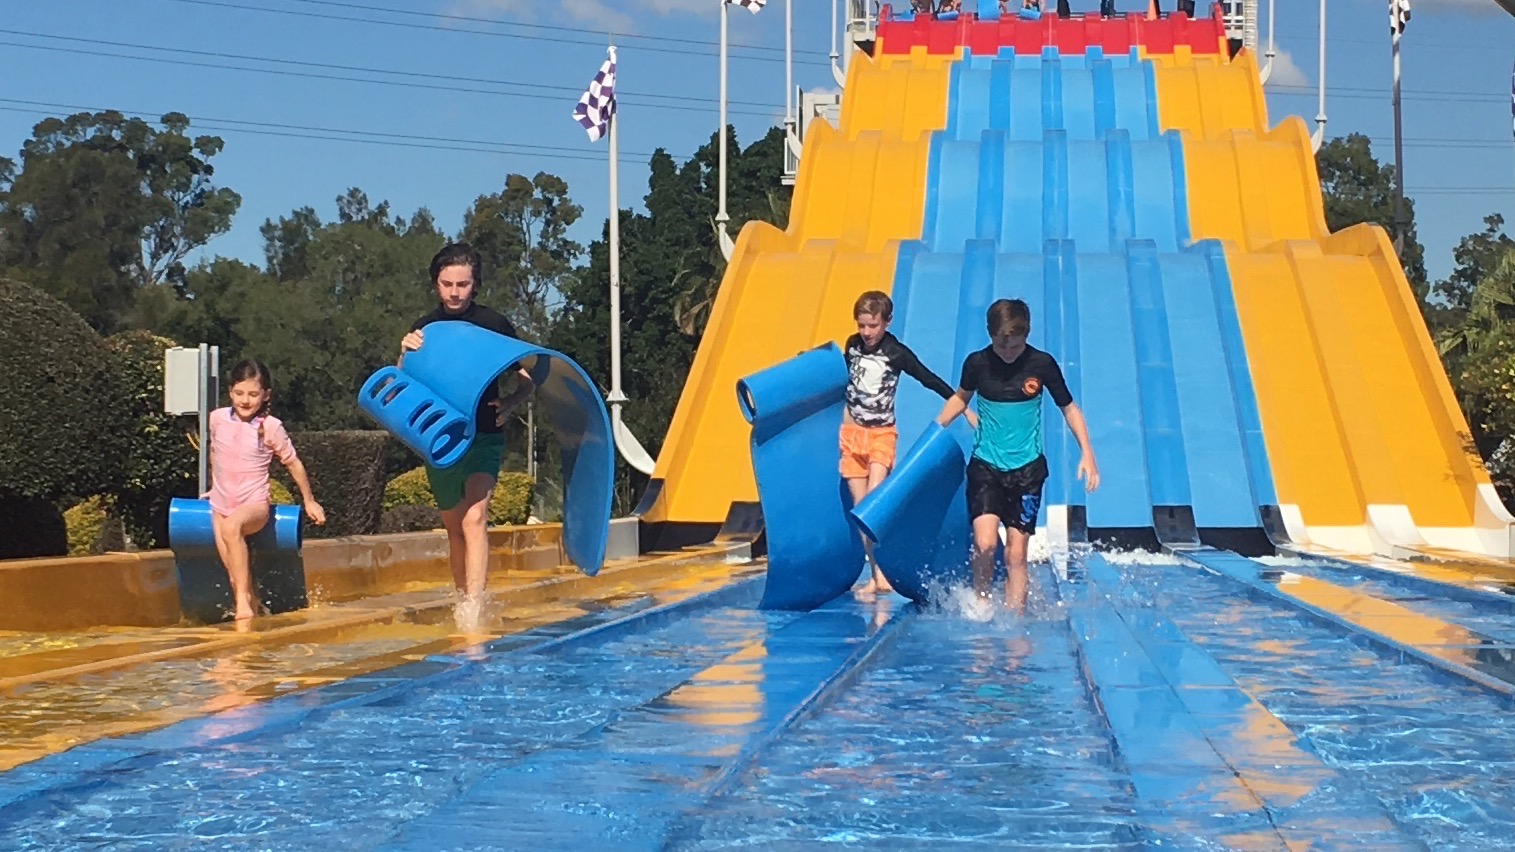 One of their favourite water slides at Wet 'n 'Wild